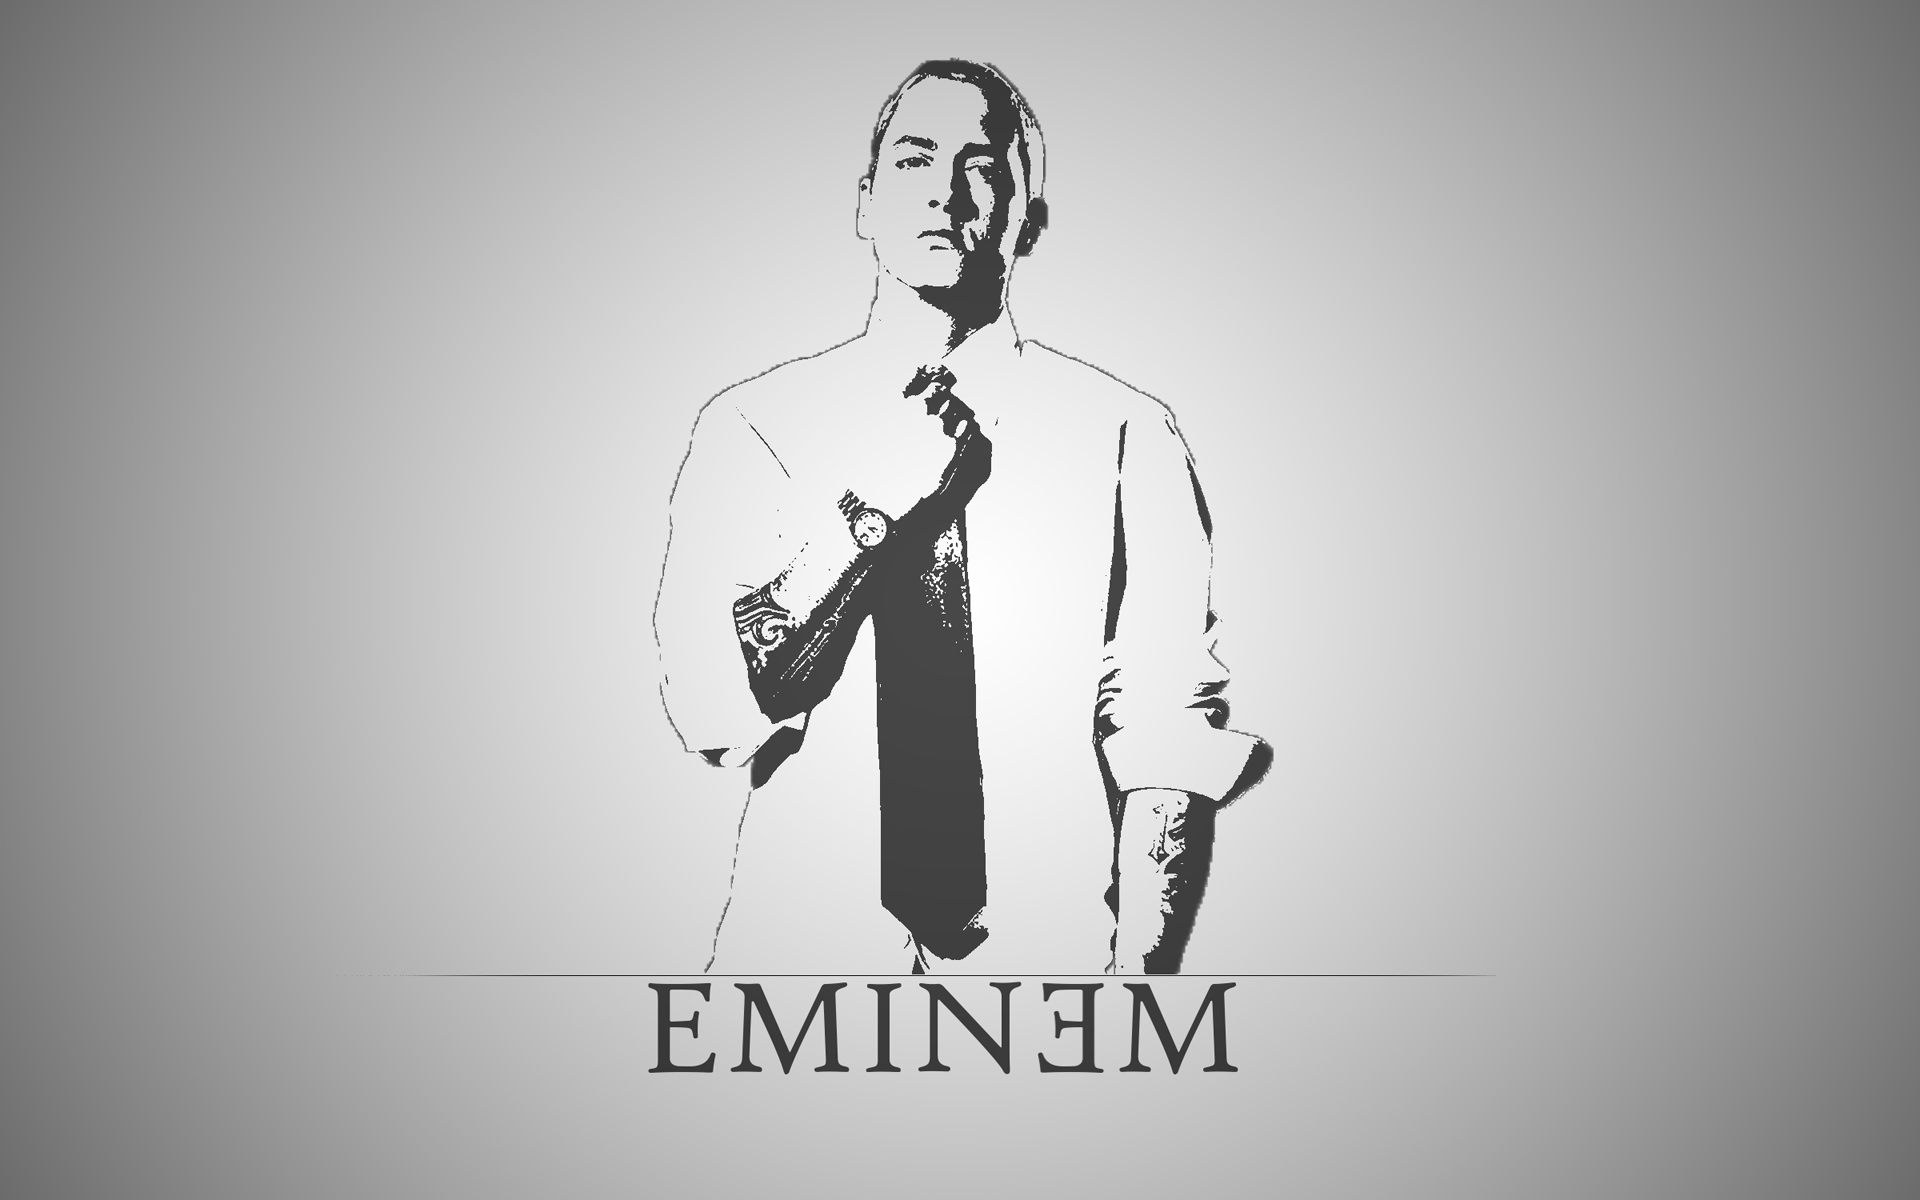 Eminem Wallpaper Backgrounds